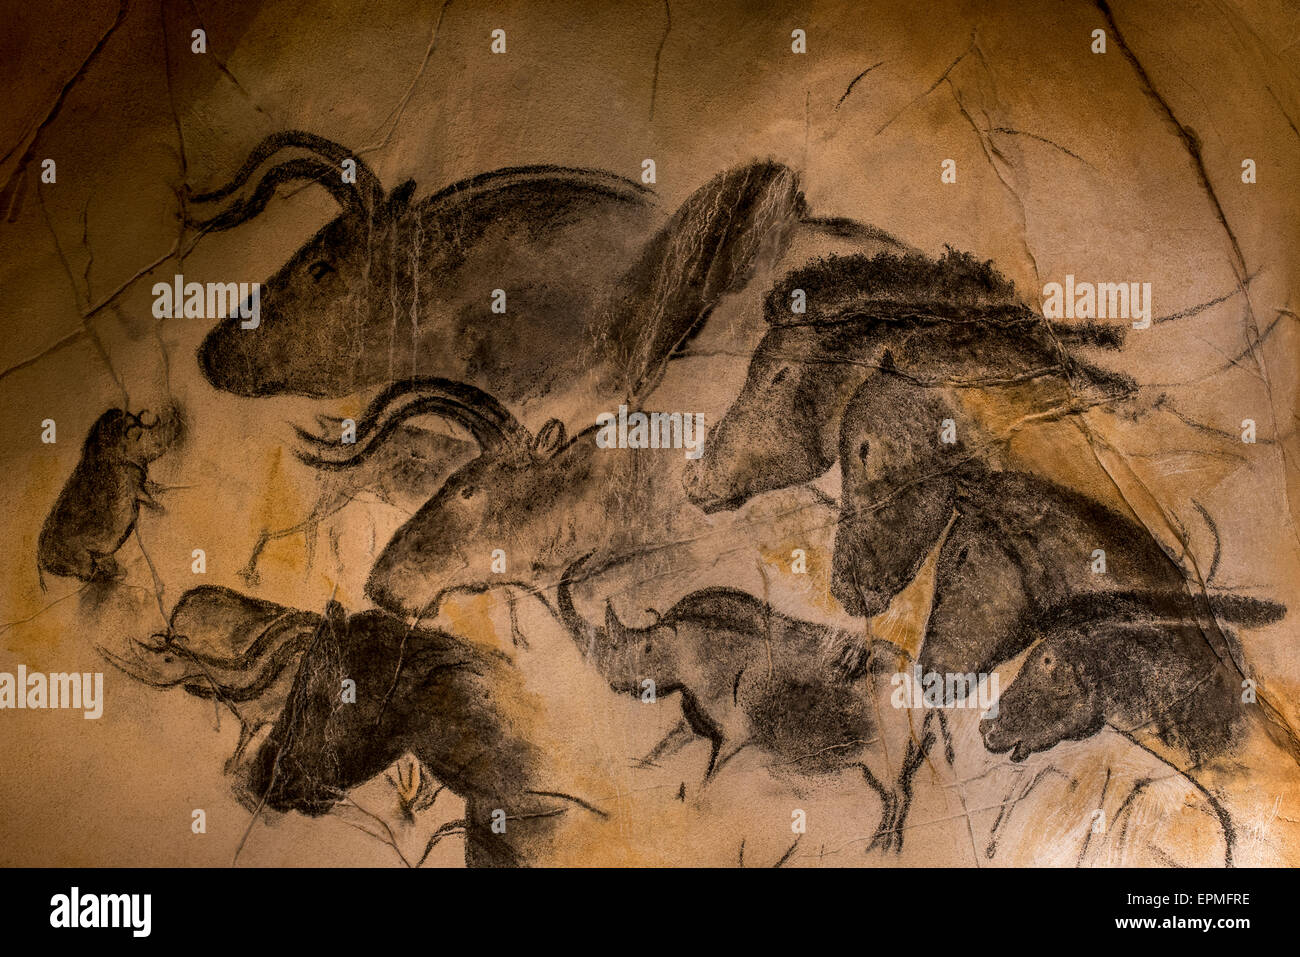 Replica Of Prehistoric Rock Paintings Of The Chauvet Cave Ardeche Stock Photo Alamy